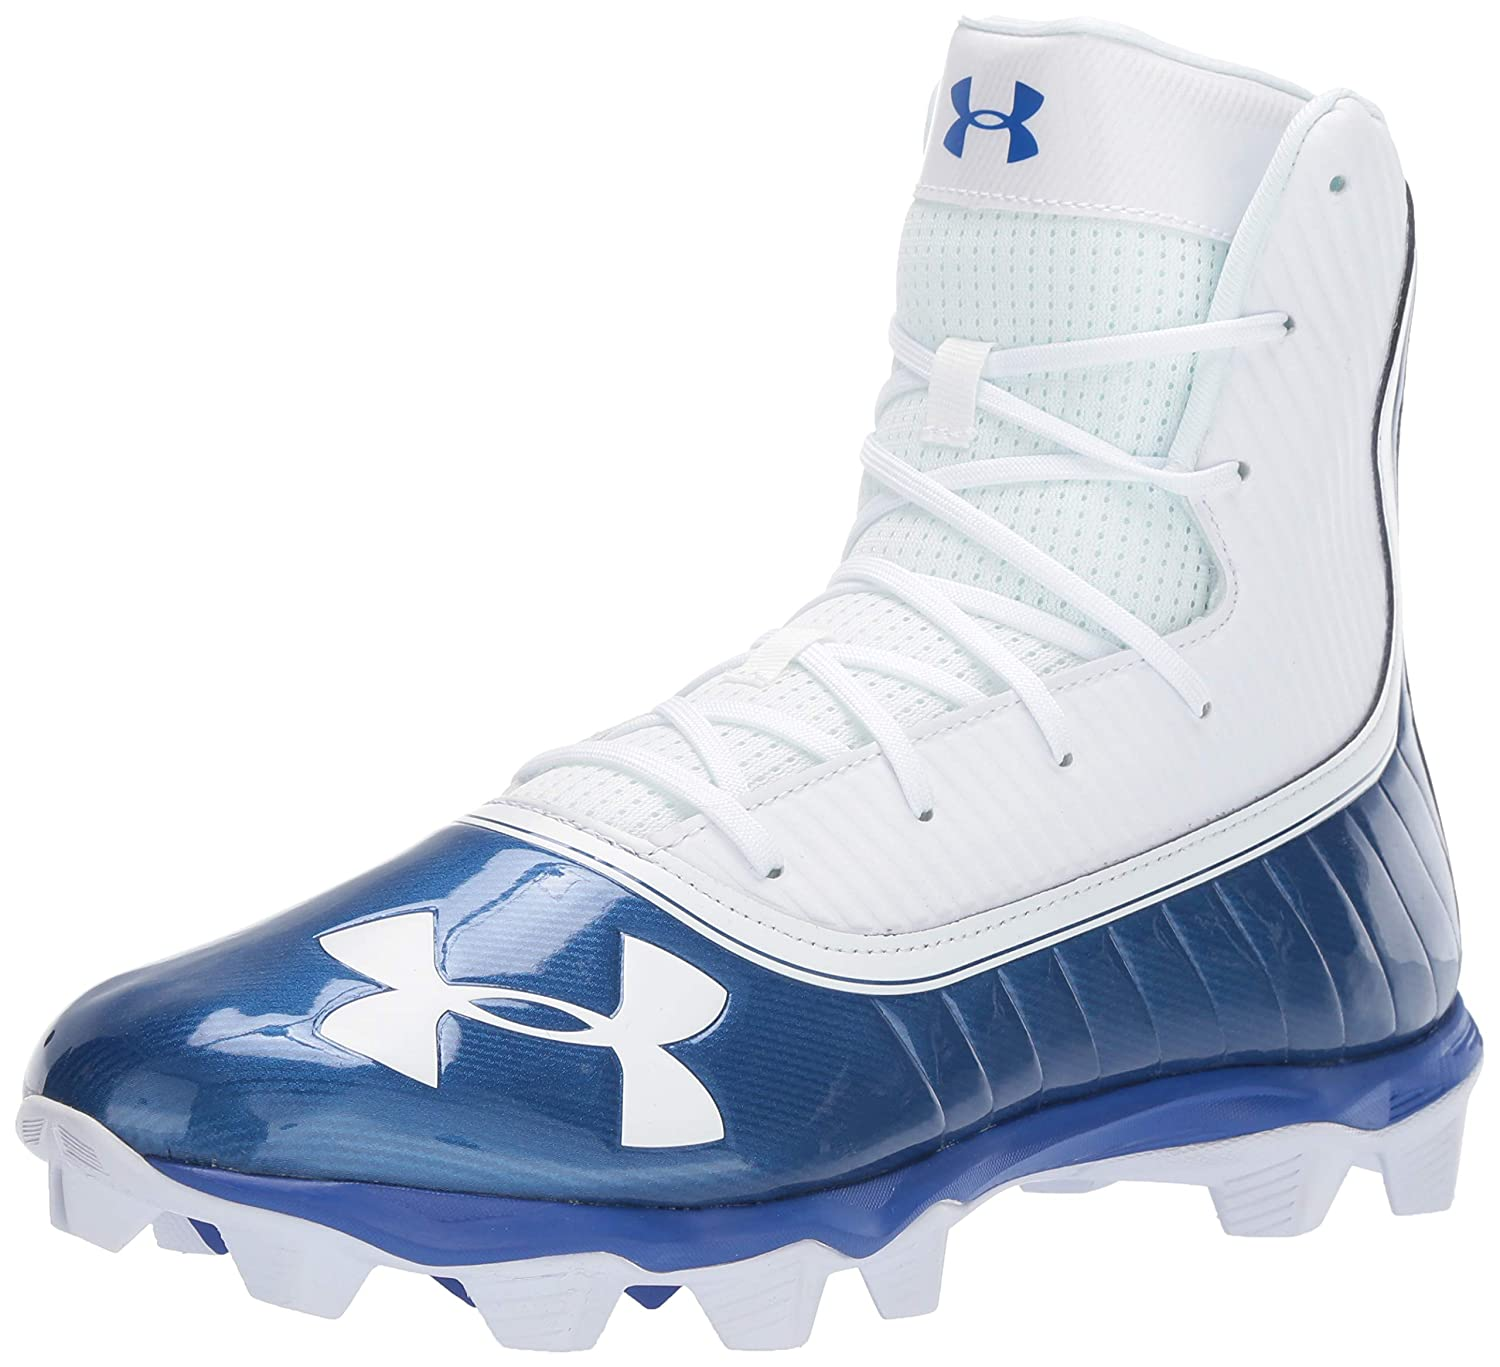 Under Armour Men's Highlight RM Football Shoe, Team Royal (401)/白い, 9 M US